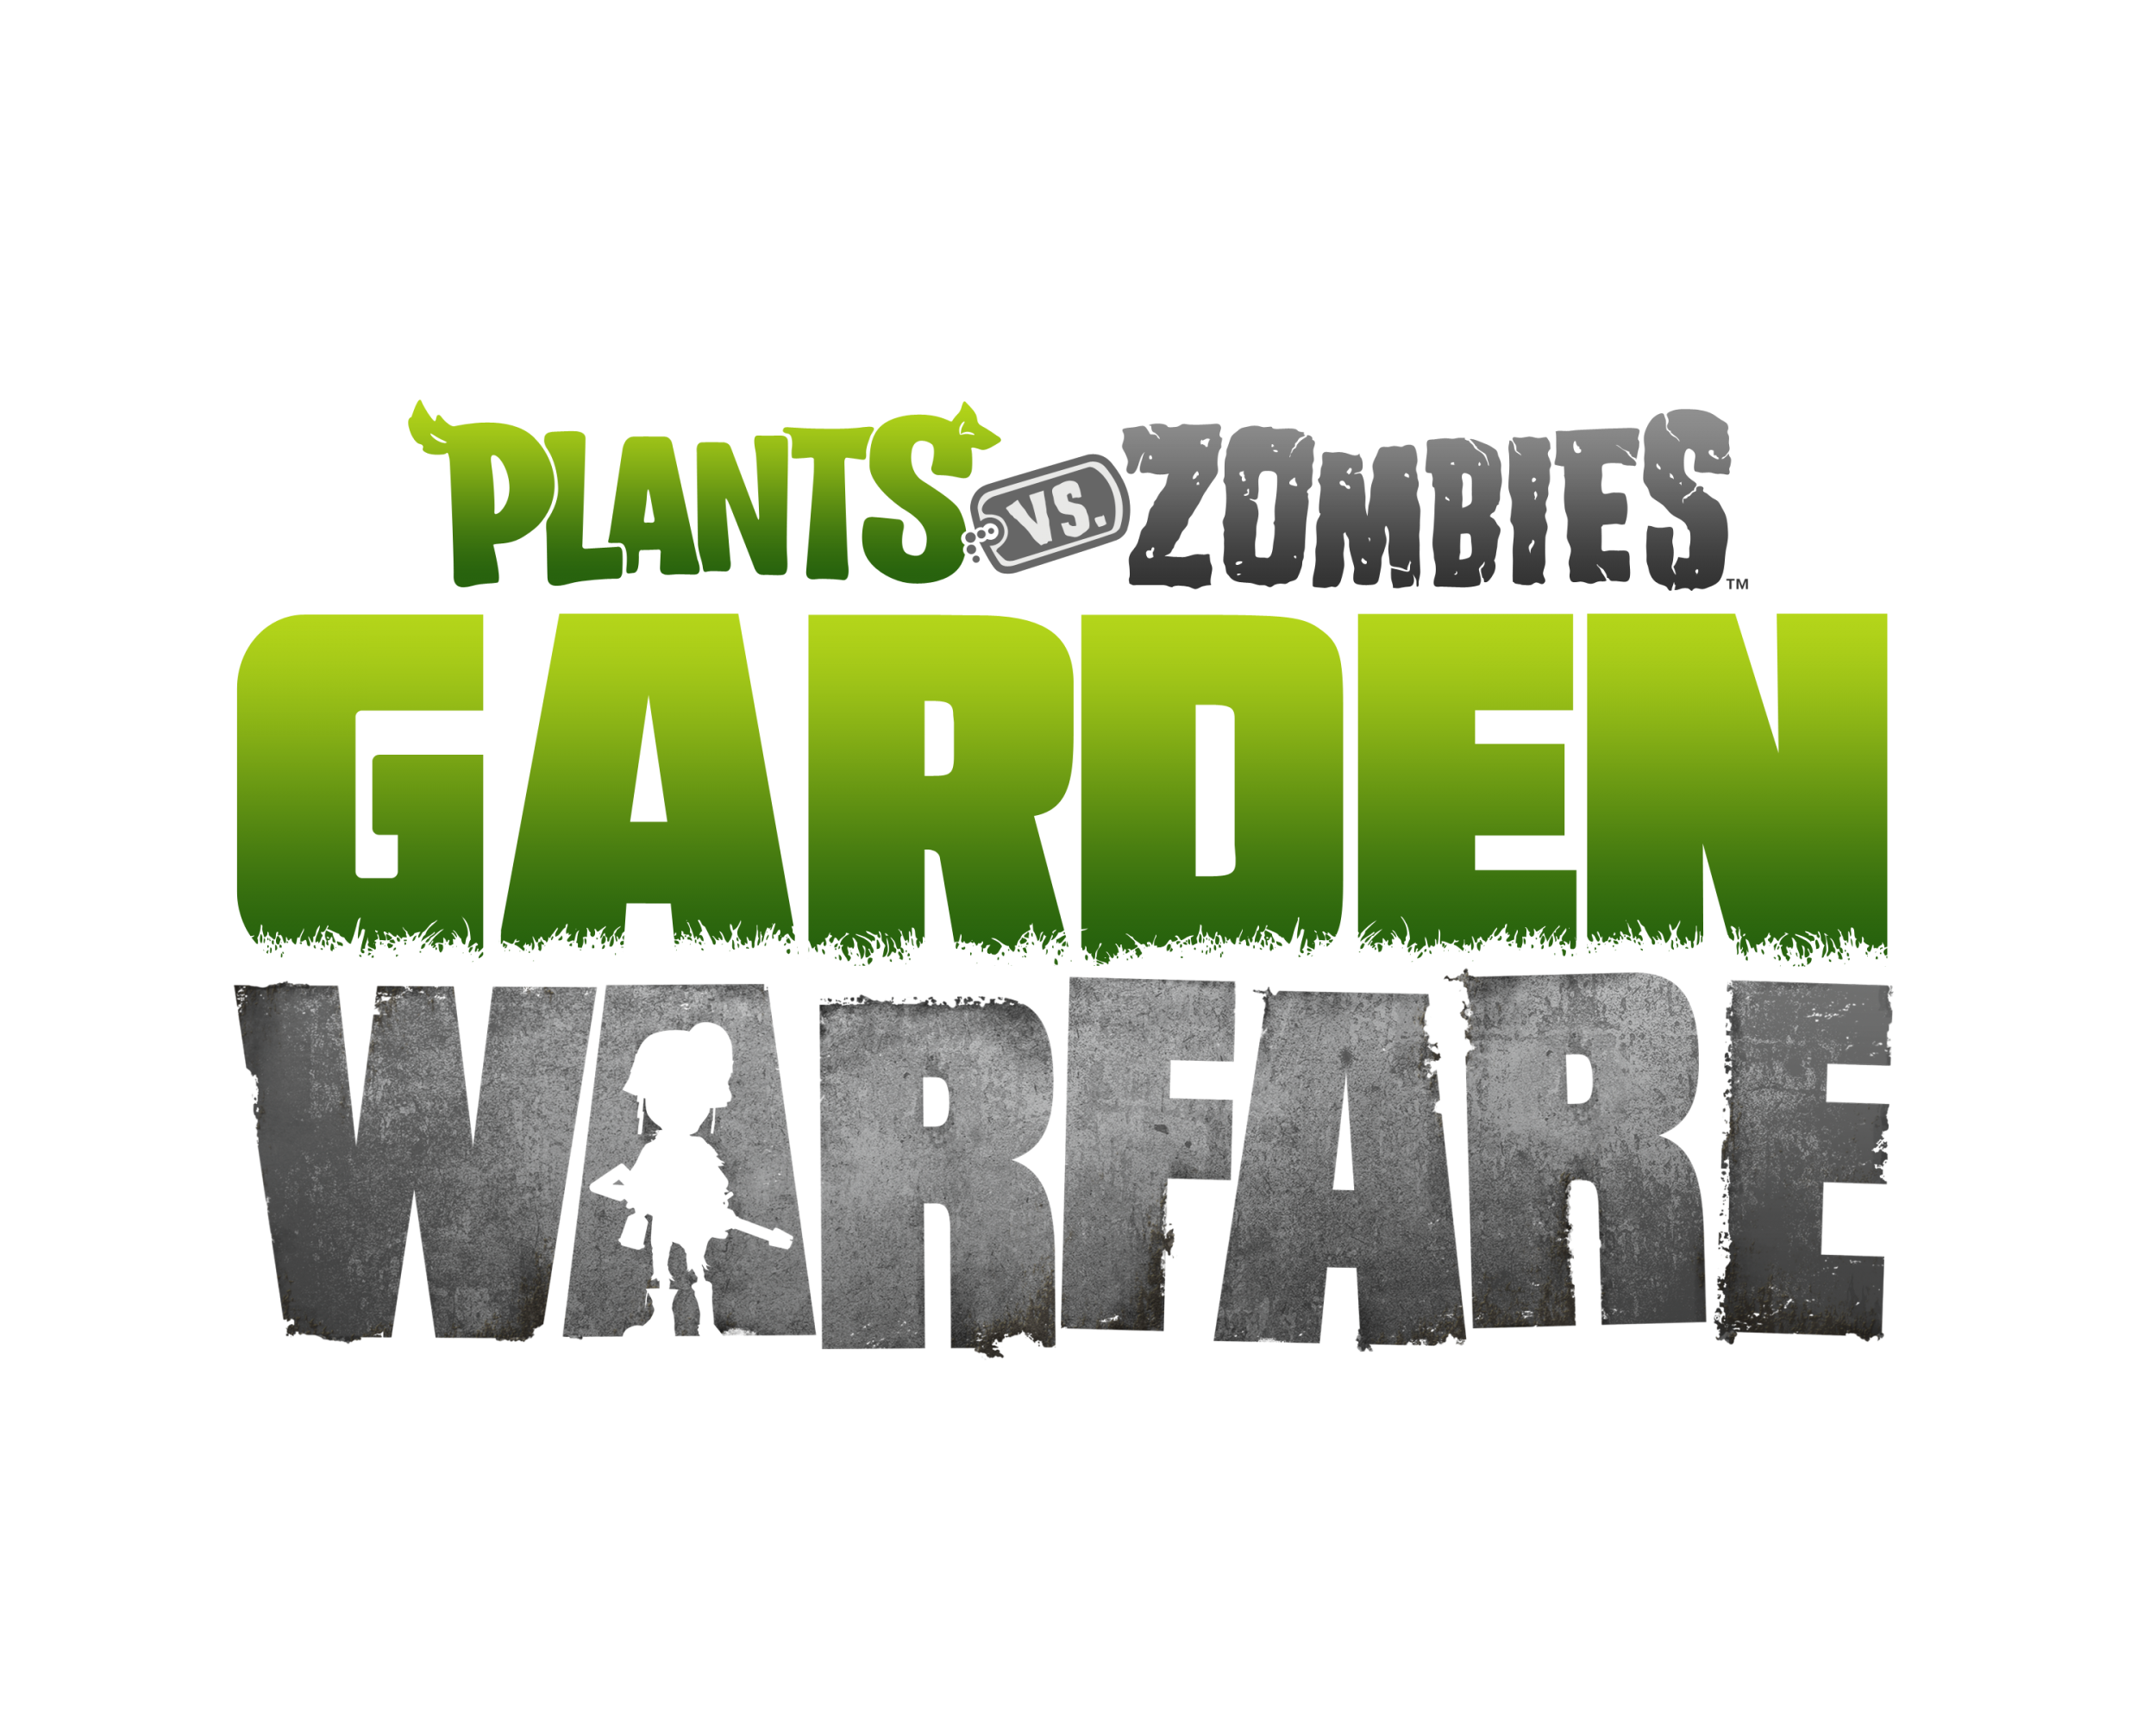 Plants Vs Zombies Garden Warfare Free Png Image PNG Image